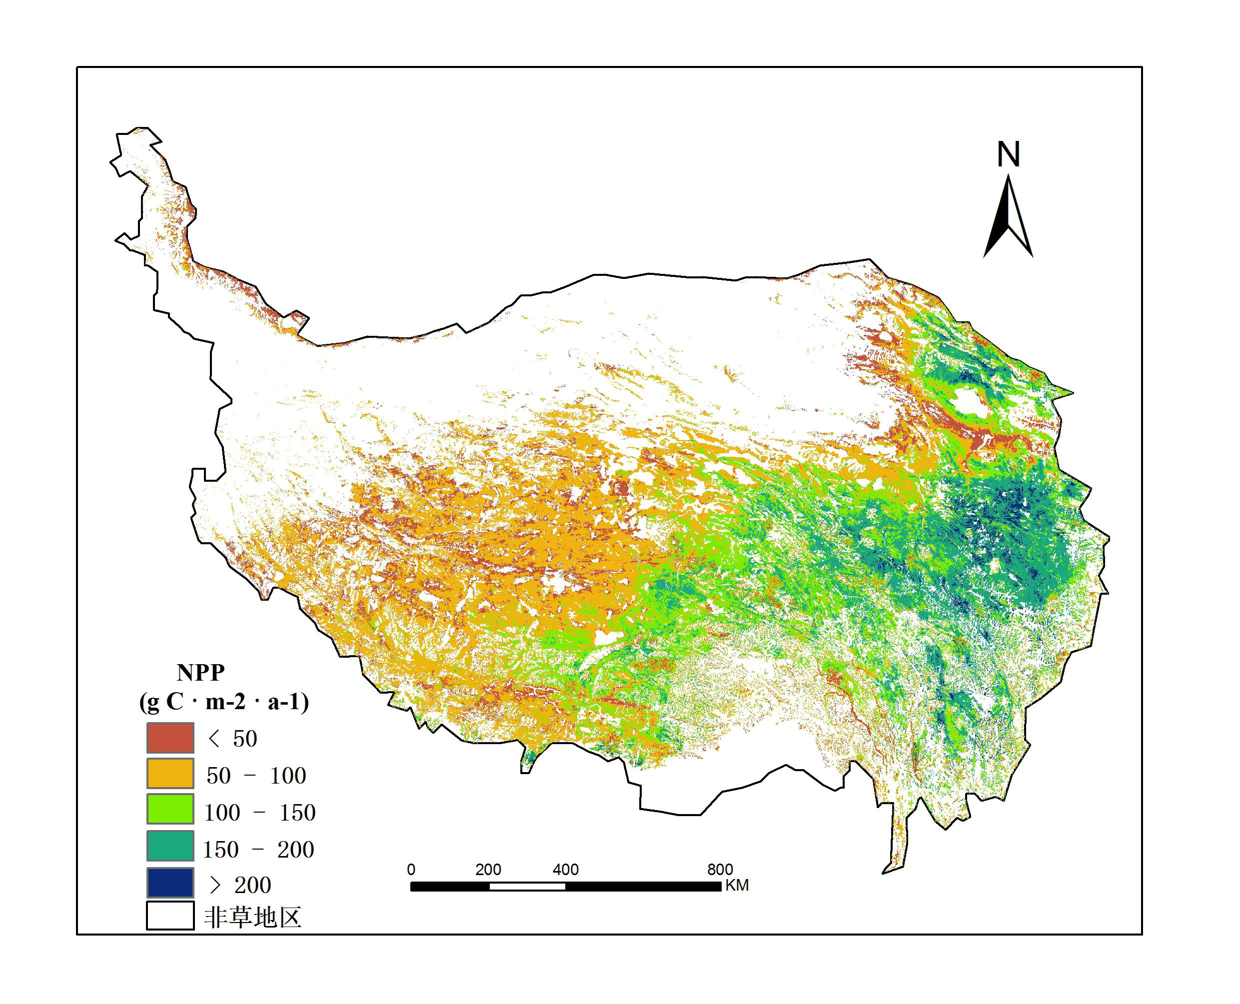 Monthly net primary productivity (NPP) dataset of the Qinghai Tibet Plateau (2012-2015)